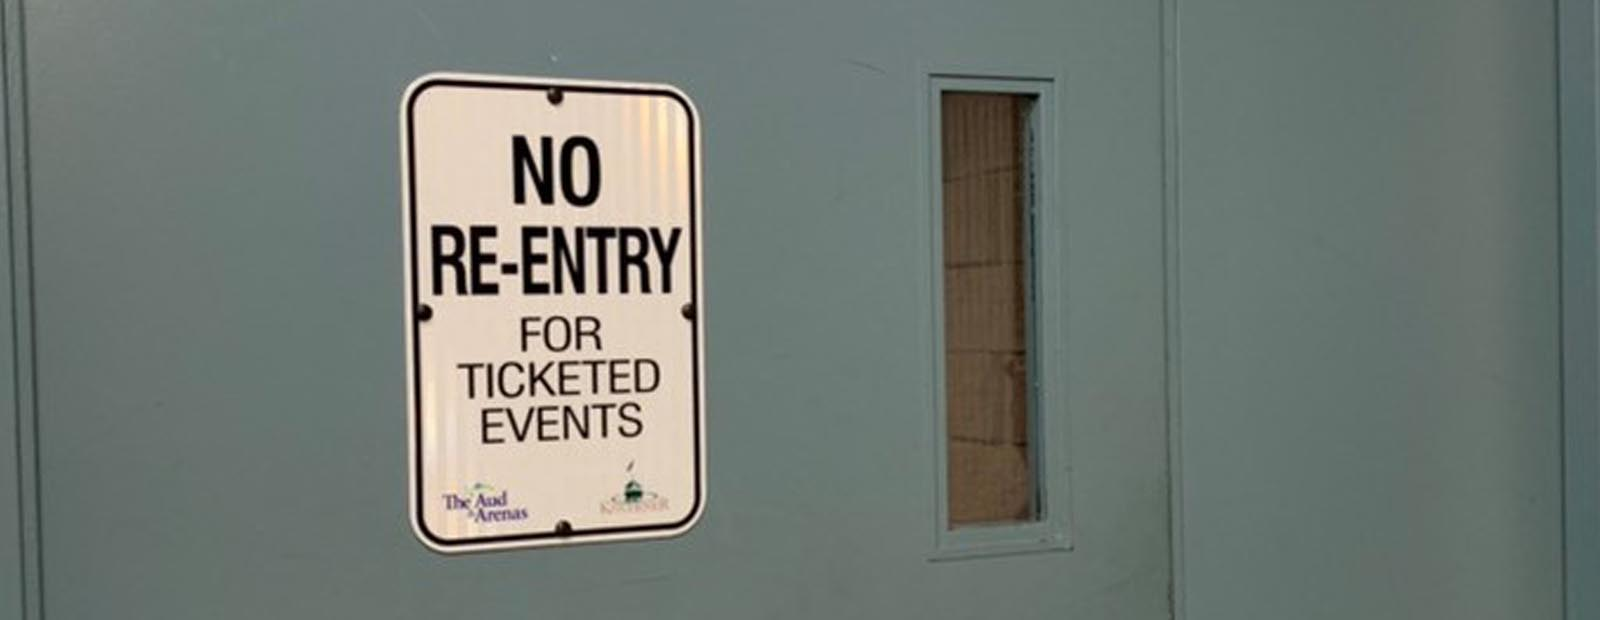 No re-entry sign for ticketed events sign on door